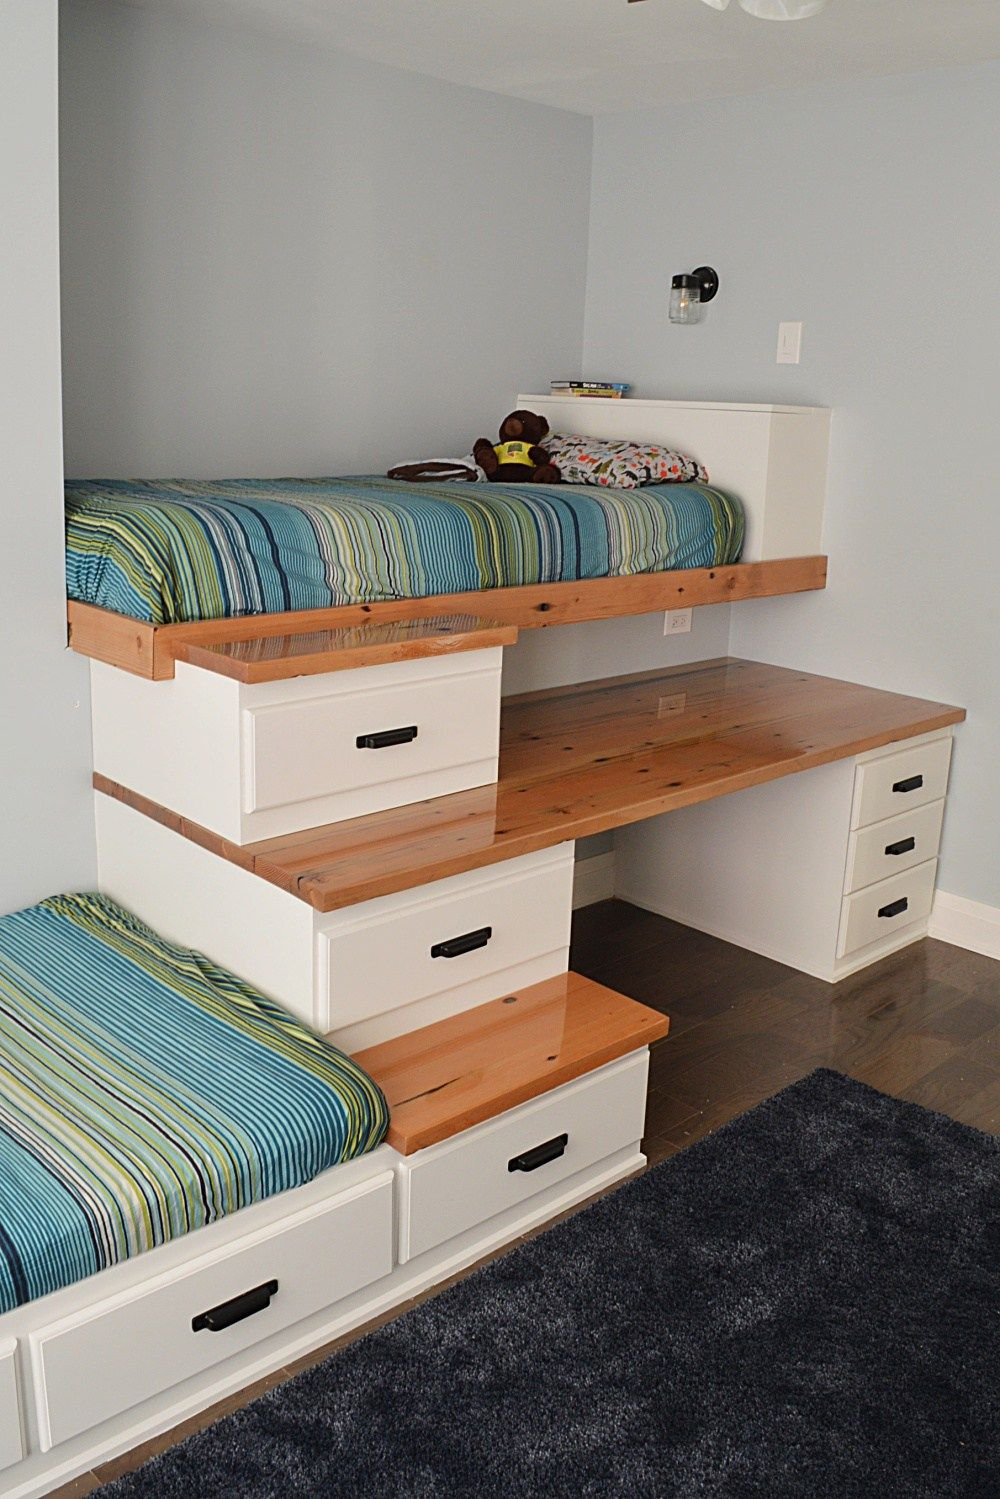 How To Make A Built In Bed With Storage The Vanderveen House Room Ideas Bedroom Bunk Bed Designs Built In Bed